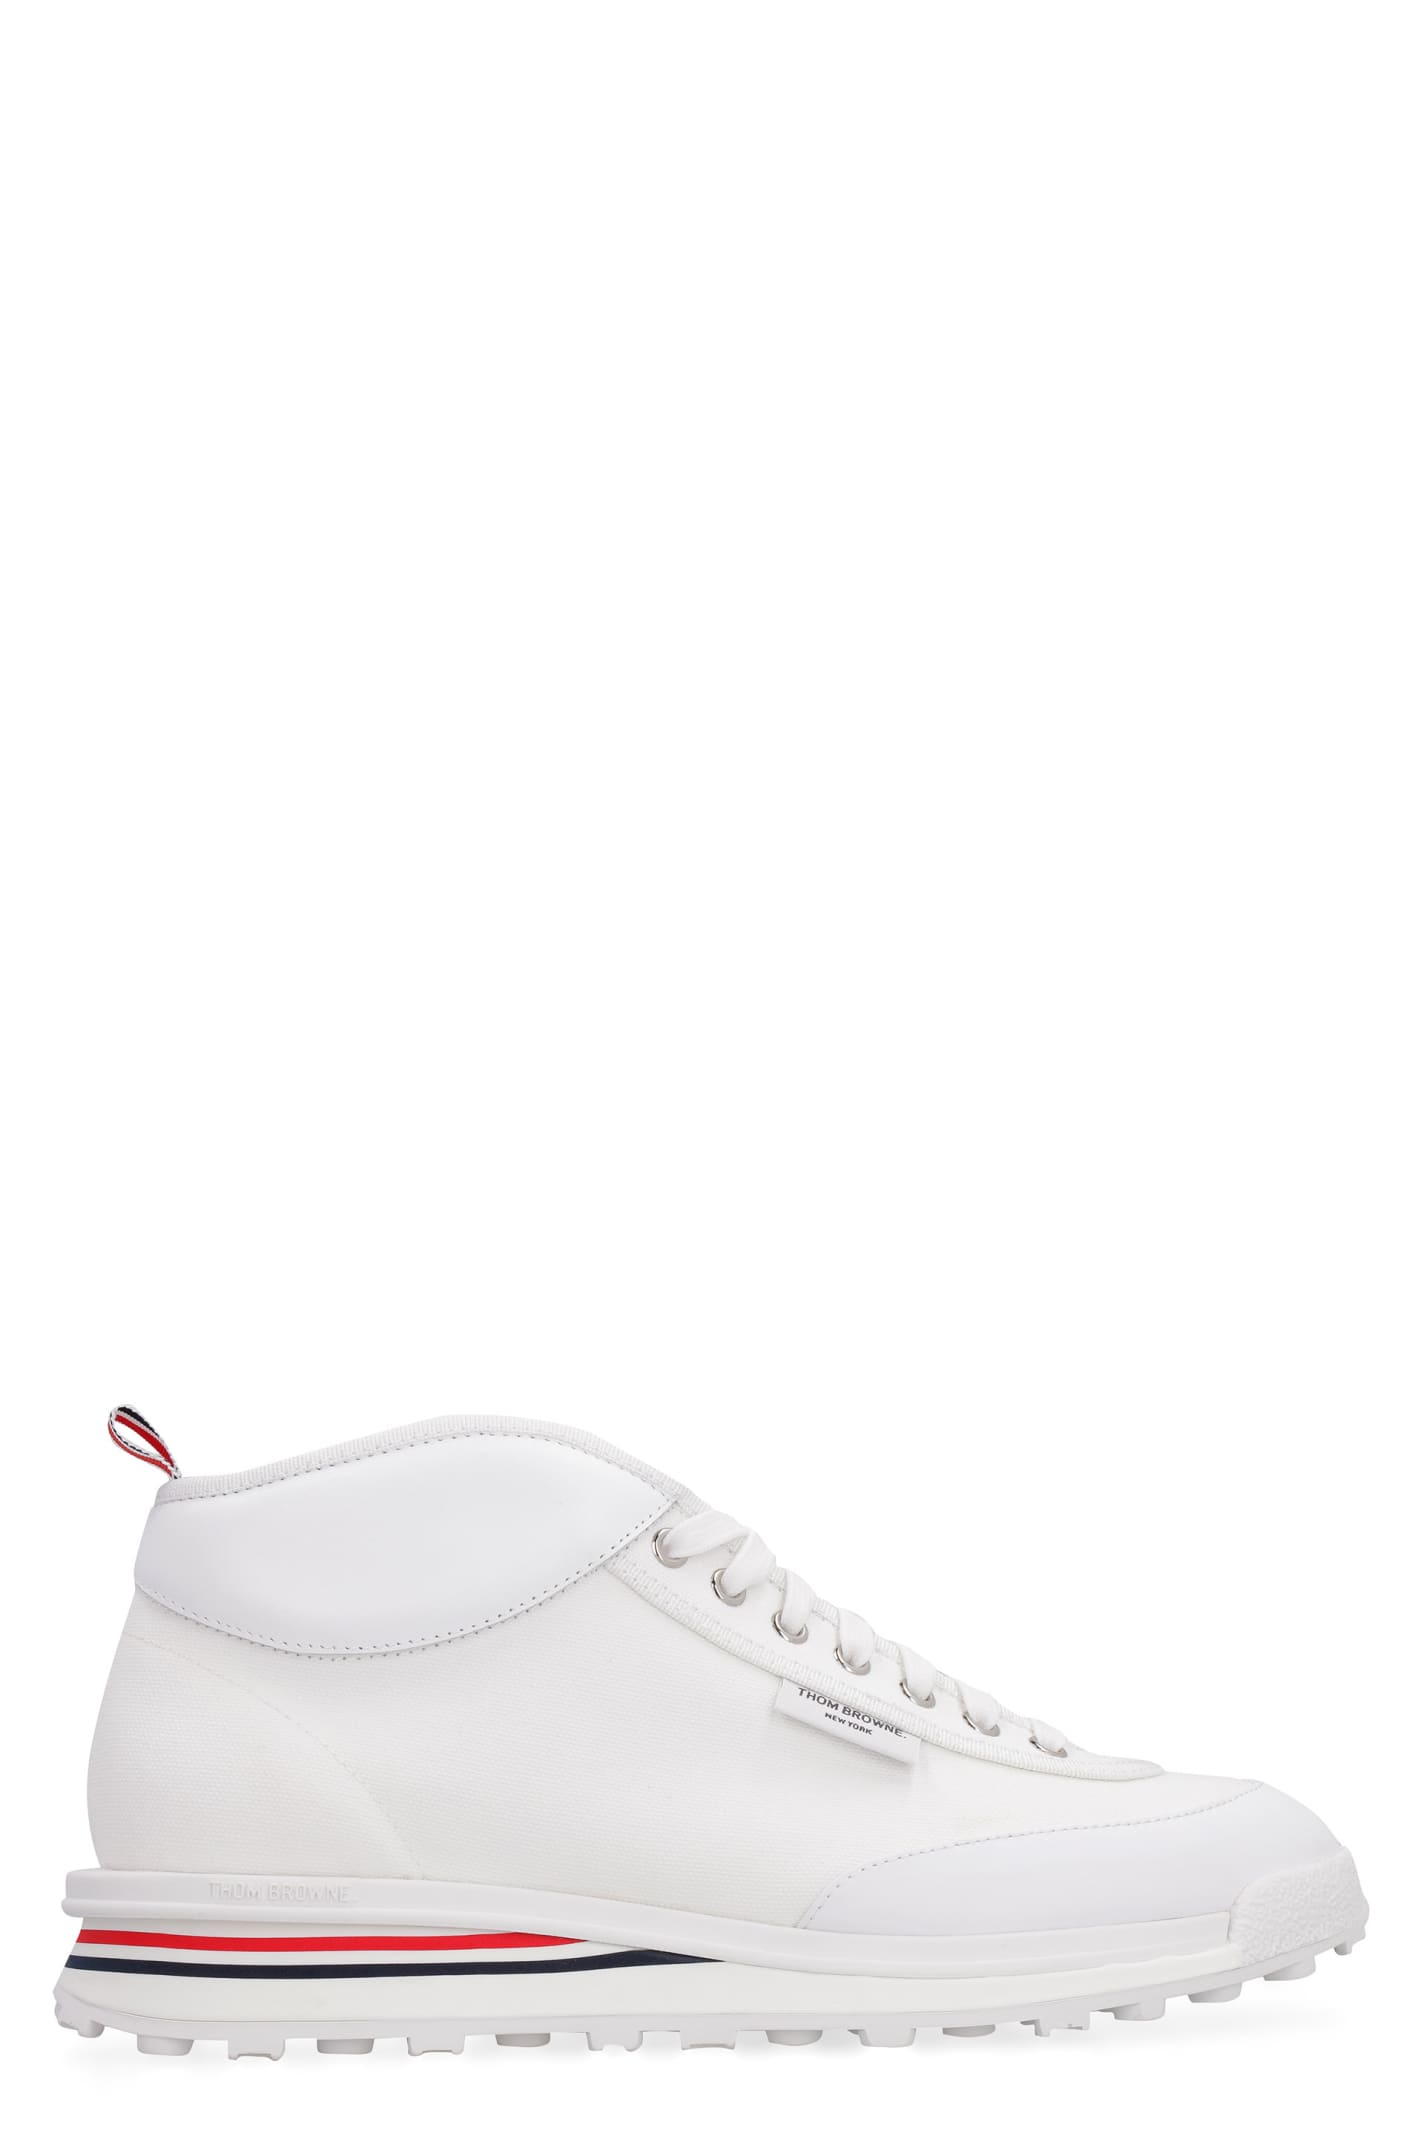 Thom Browne Shoes CANVAS HIGH-TOP SNEAKERS